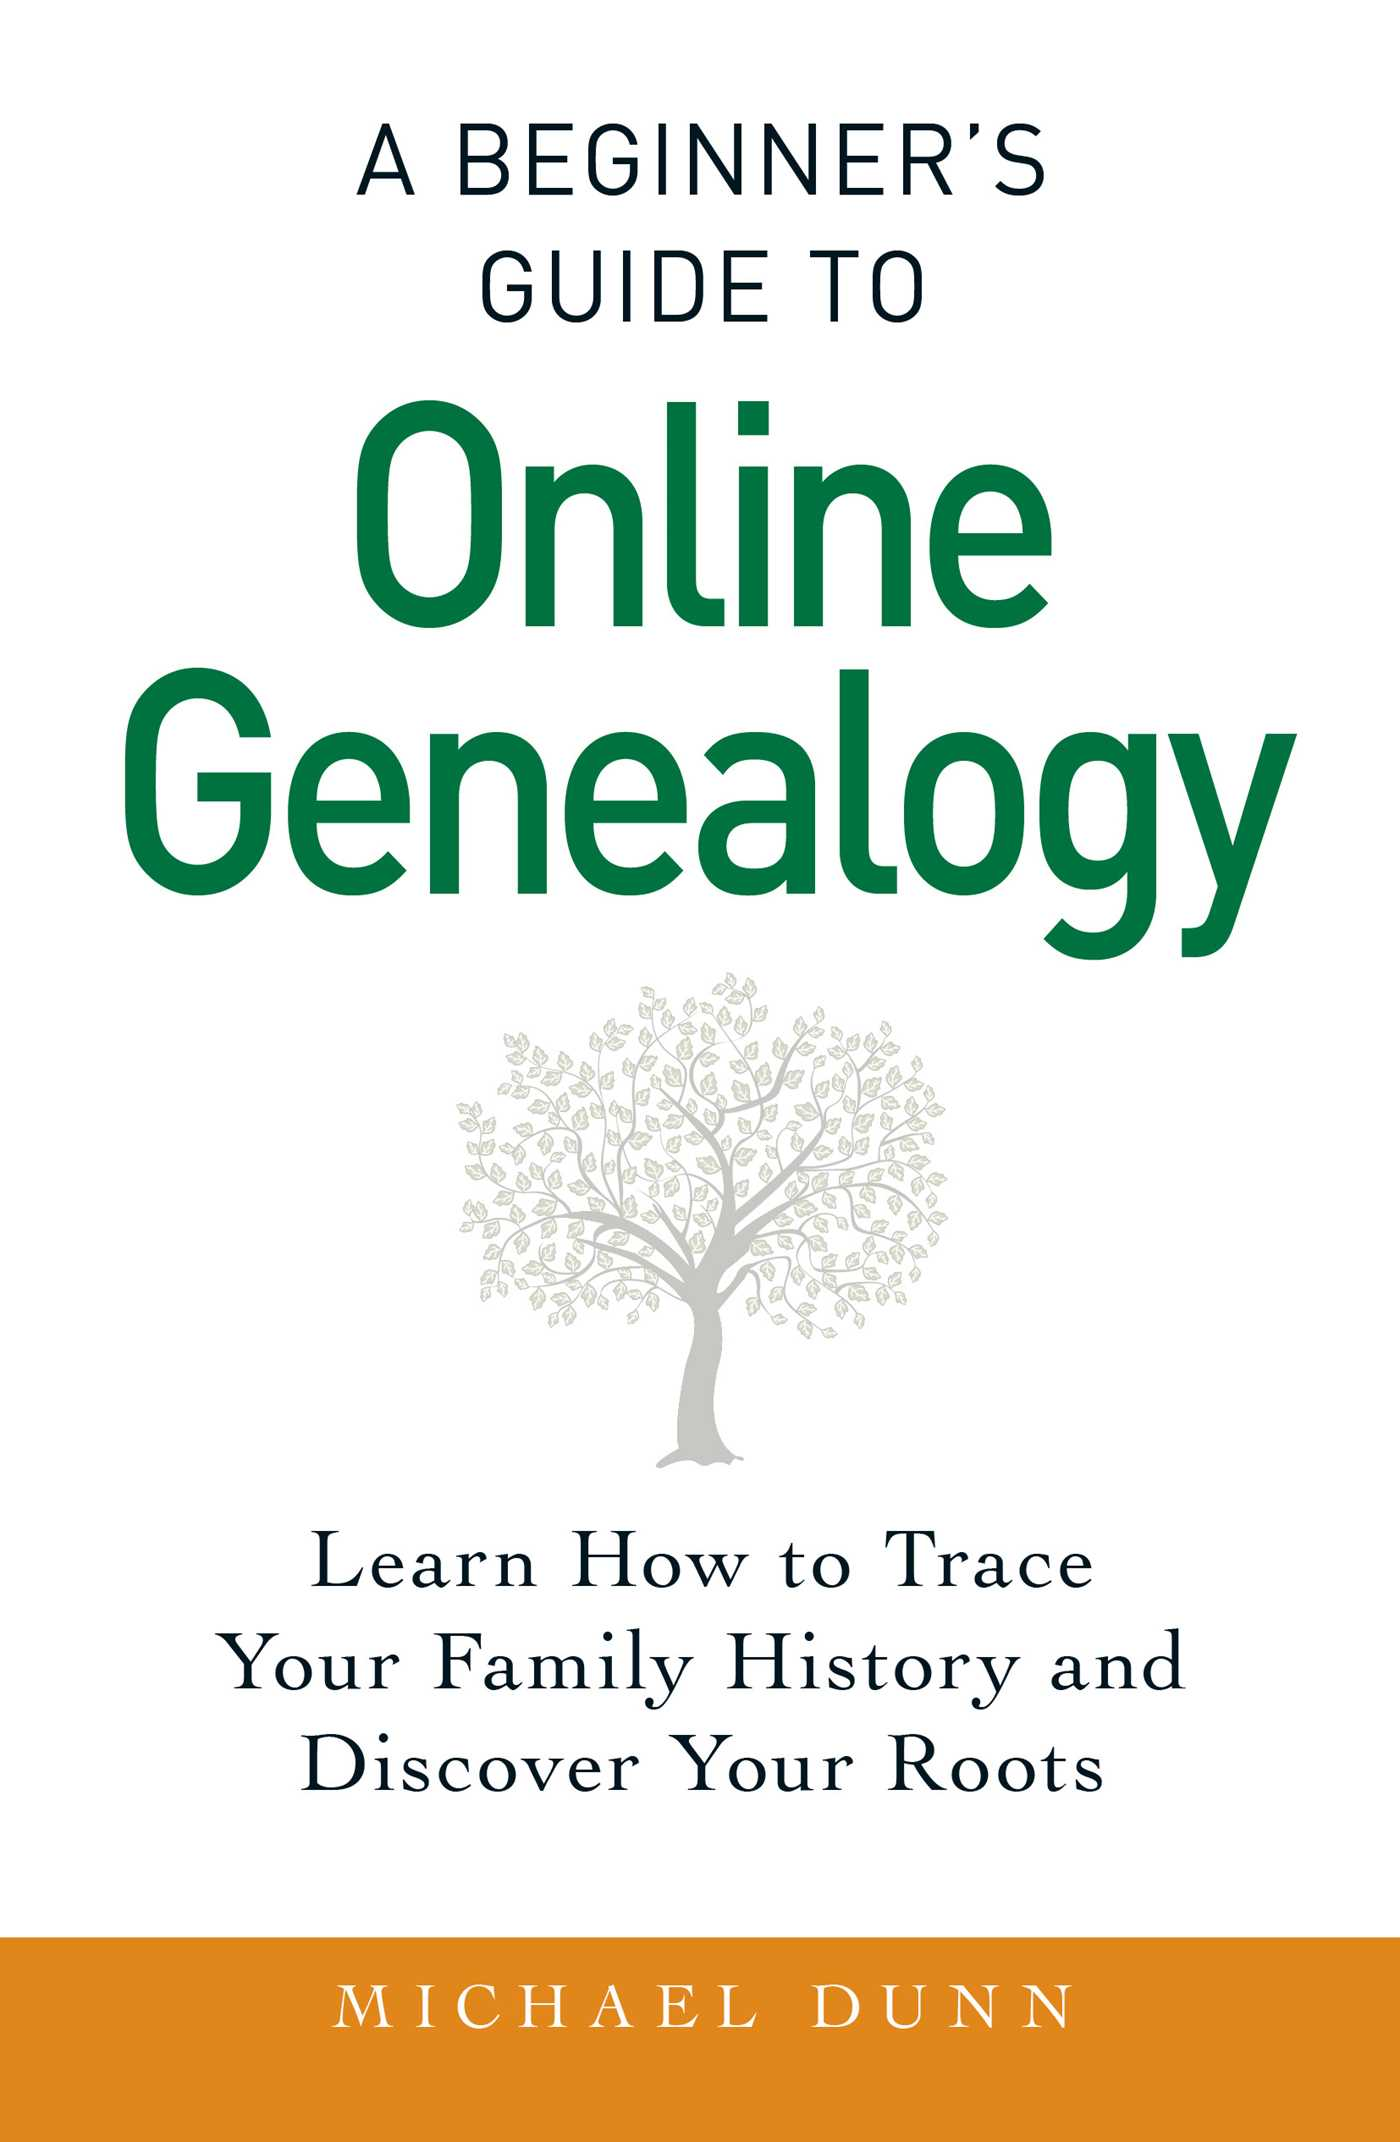 A Beginner's Guide to Online Genealogy Learn How to Trace Your Family History and Discover Your Roots